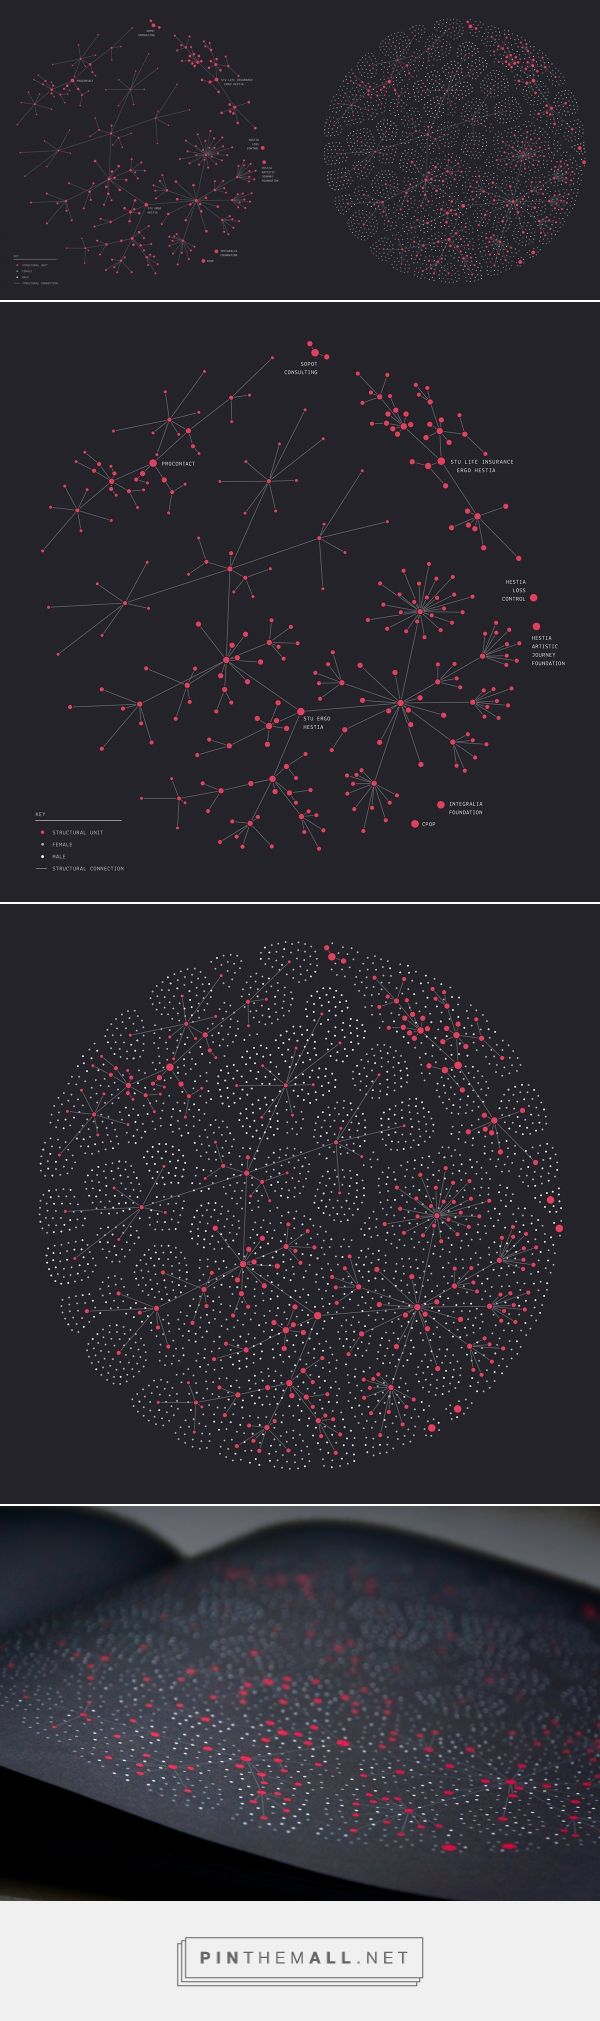 Company structure | data visualization / infographic on Behance... - a grouped images picture - Pin Them All